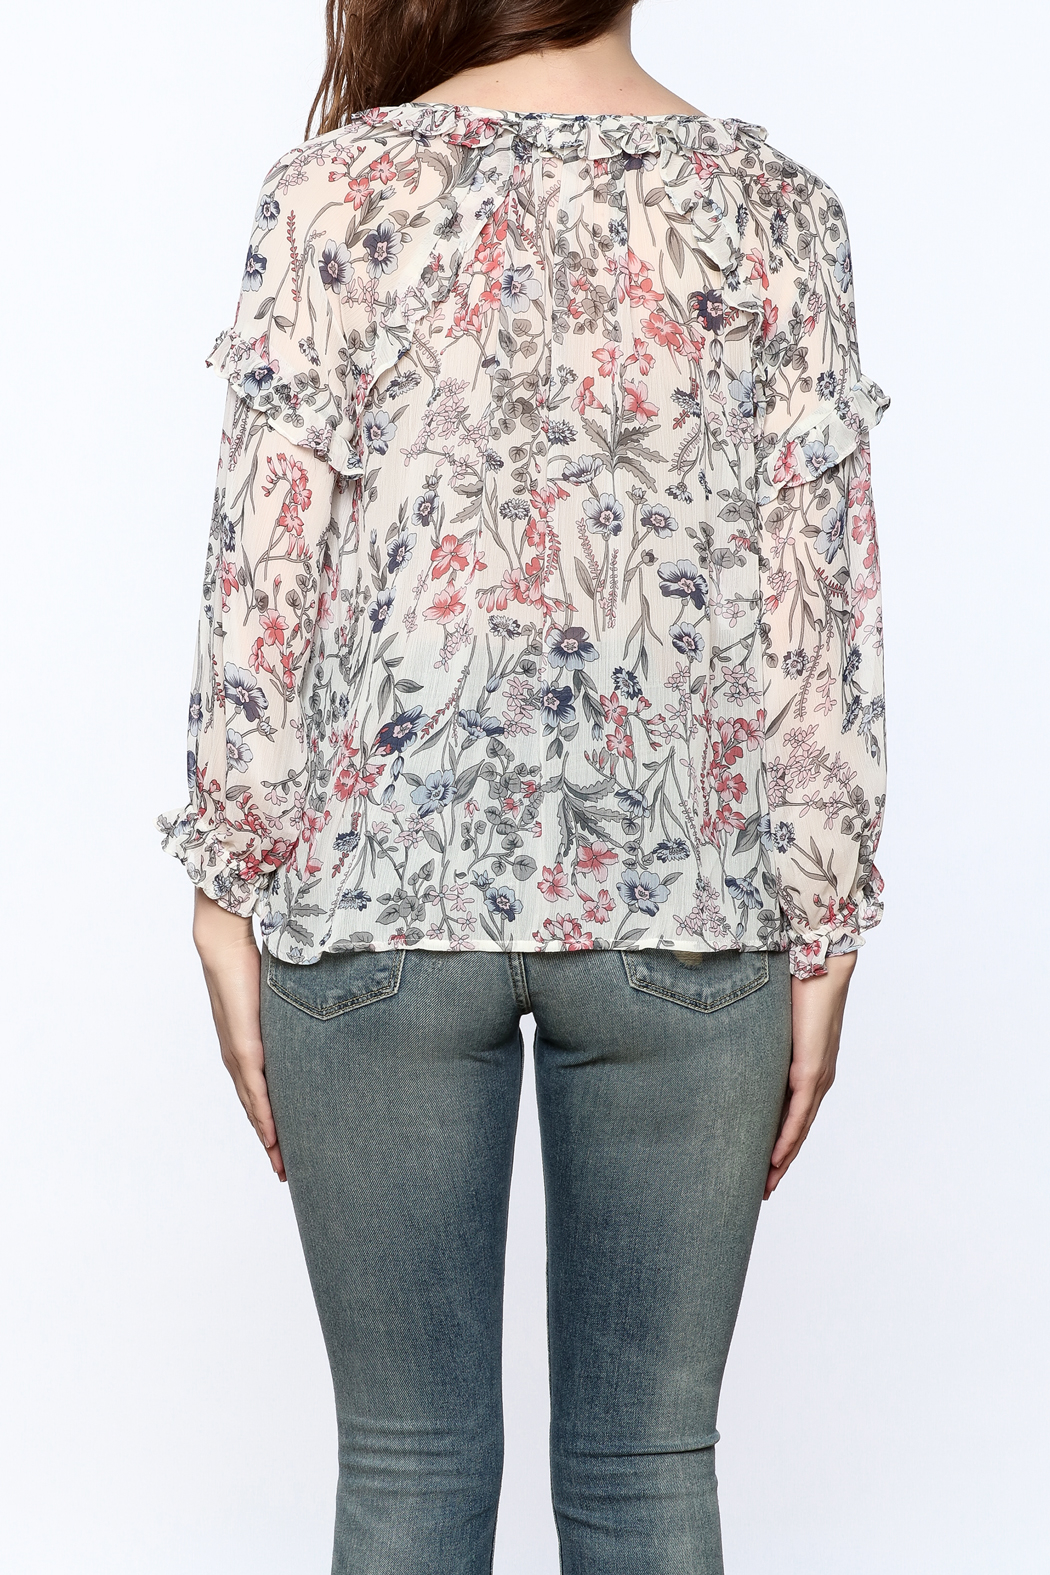 re:named Lightweight Floral Print Blouse - Back Cropped Image